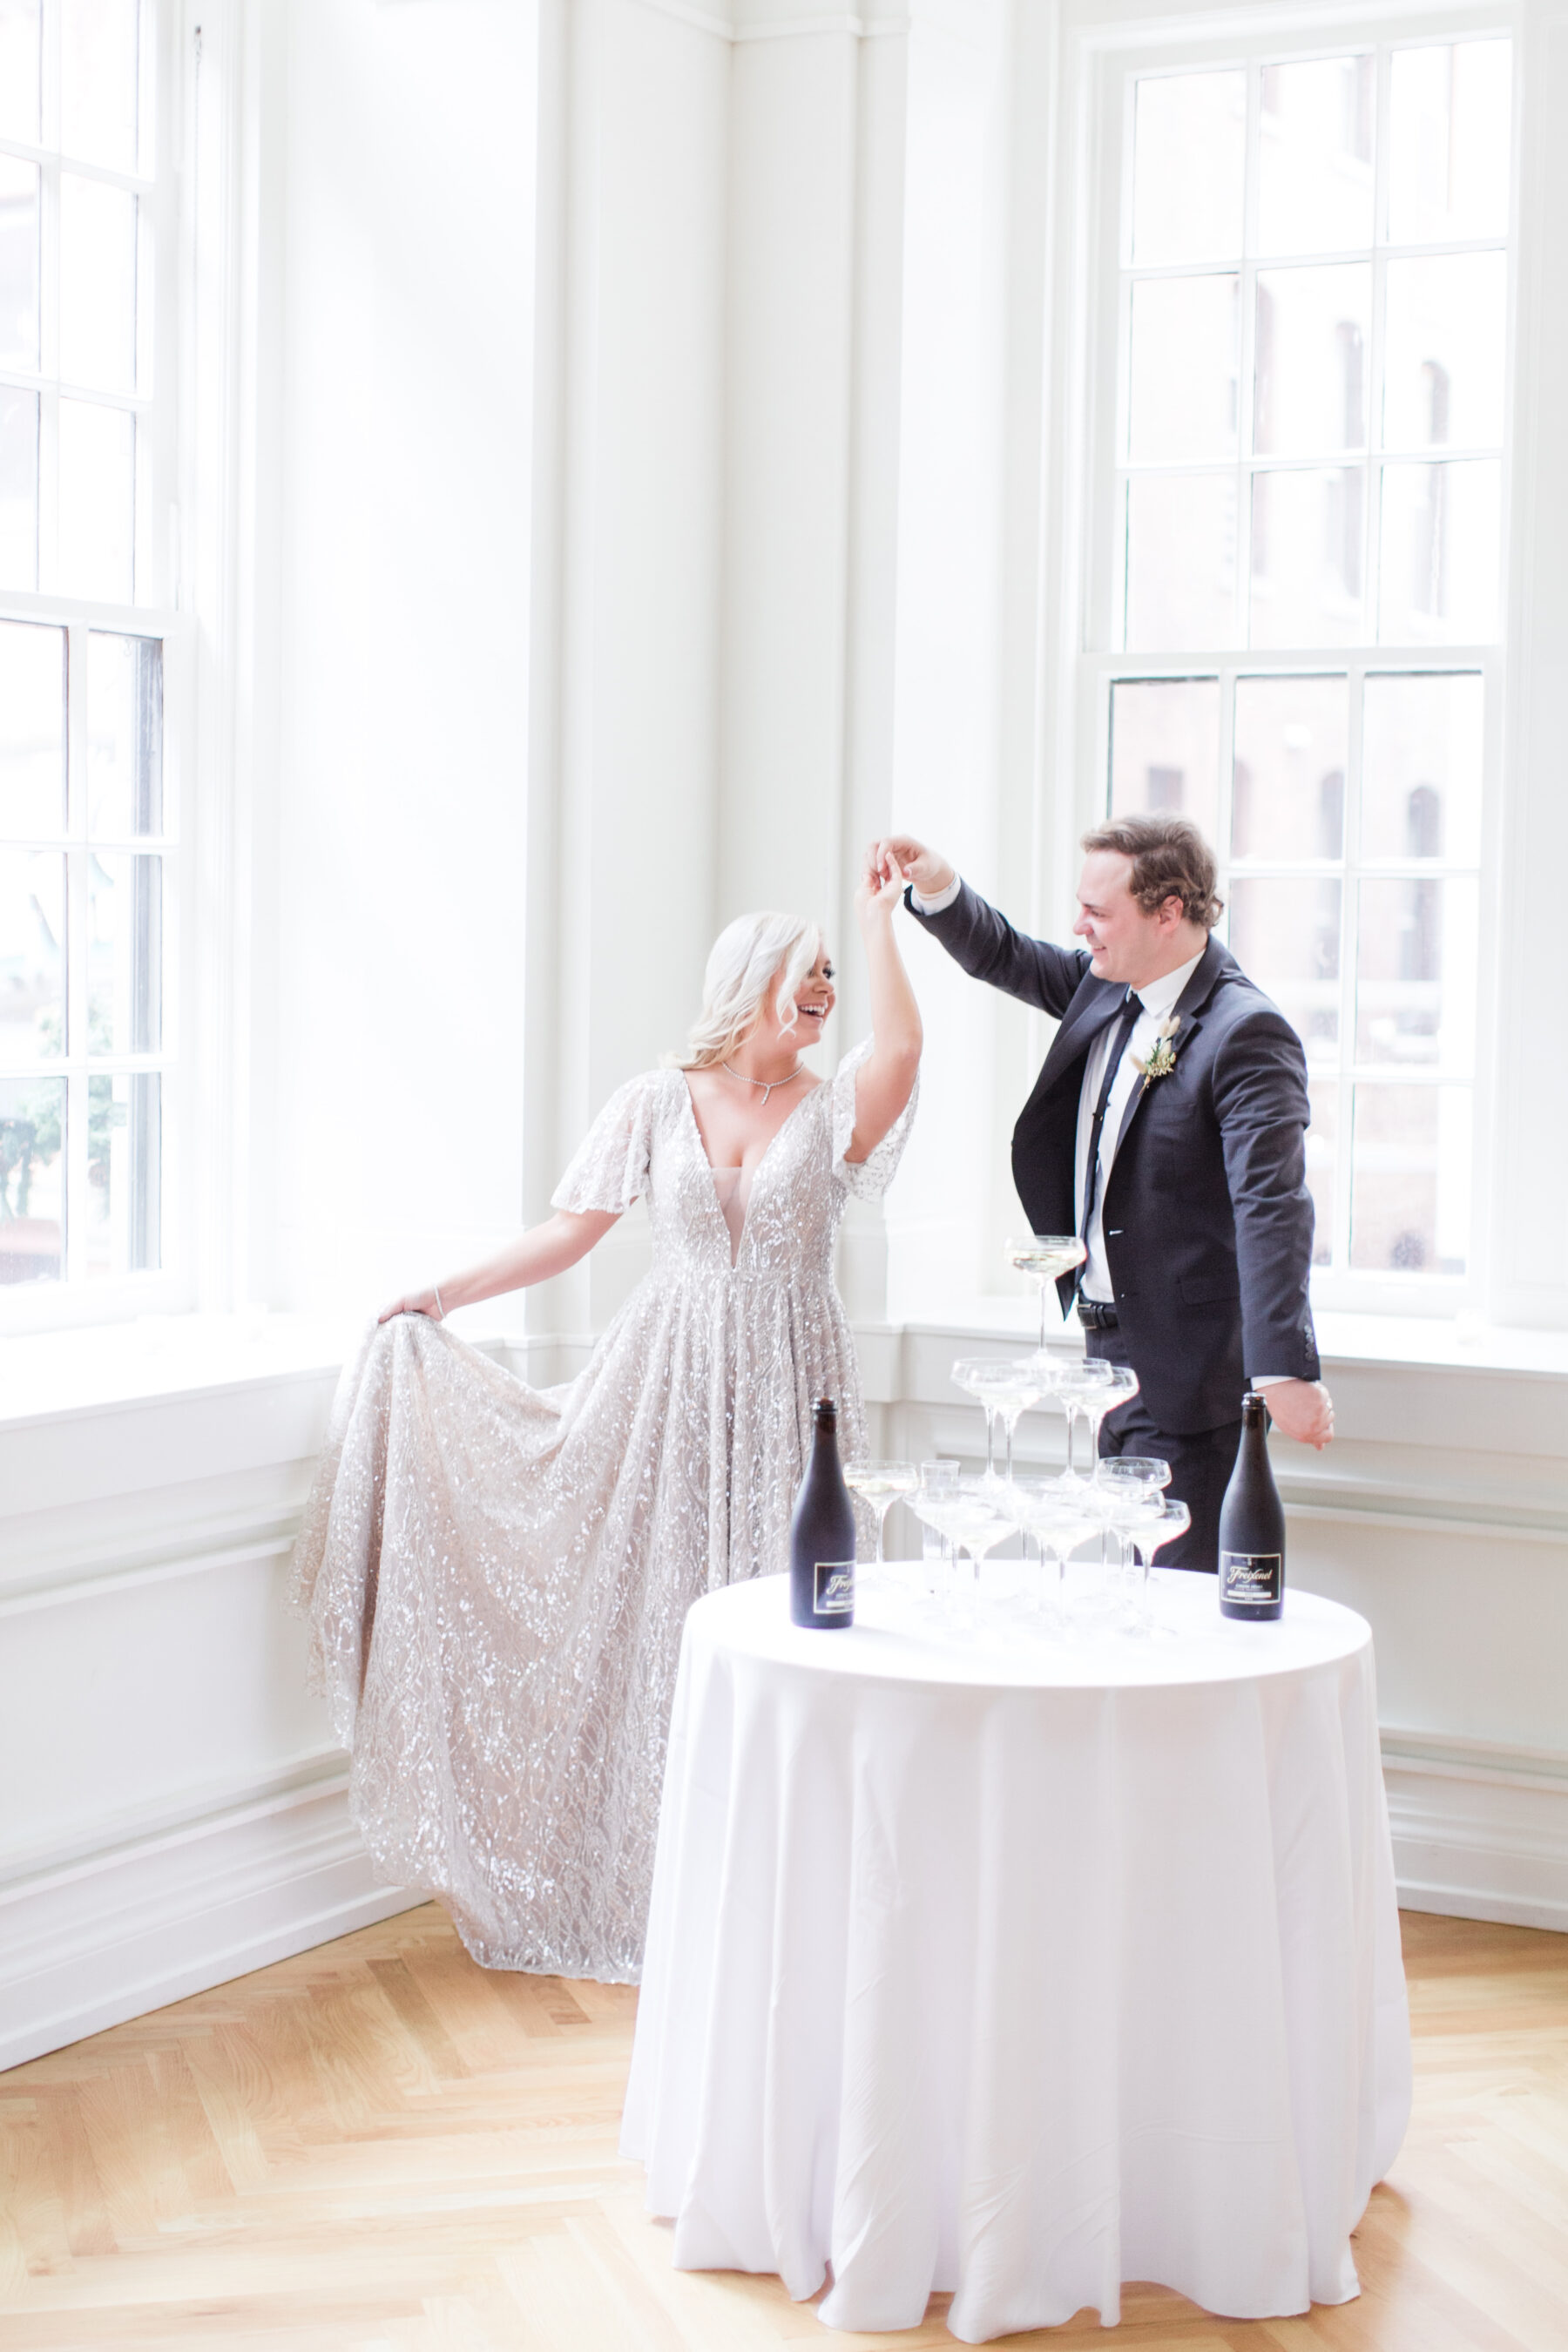 Classic, Yet Modern New Years Eve Wedding Inspiration featured on Nashville Bride Guide